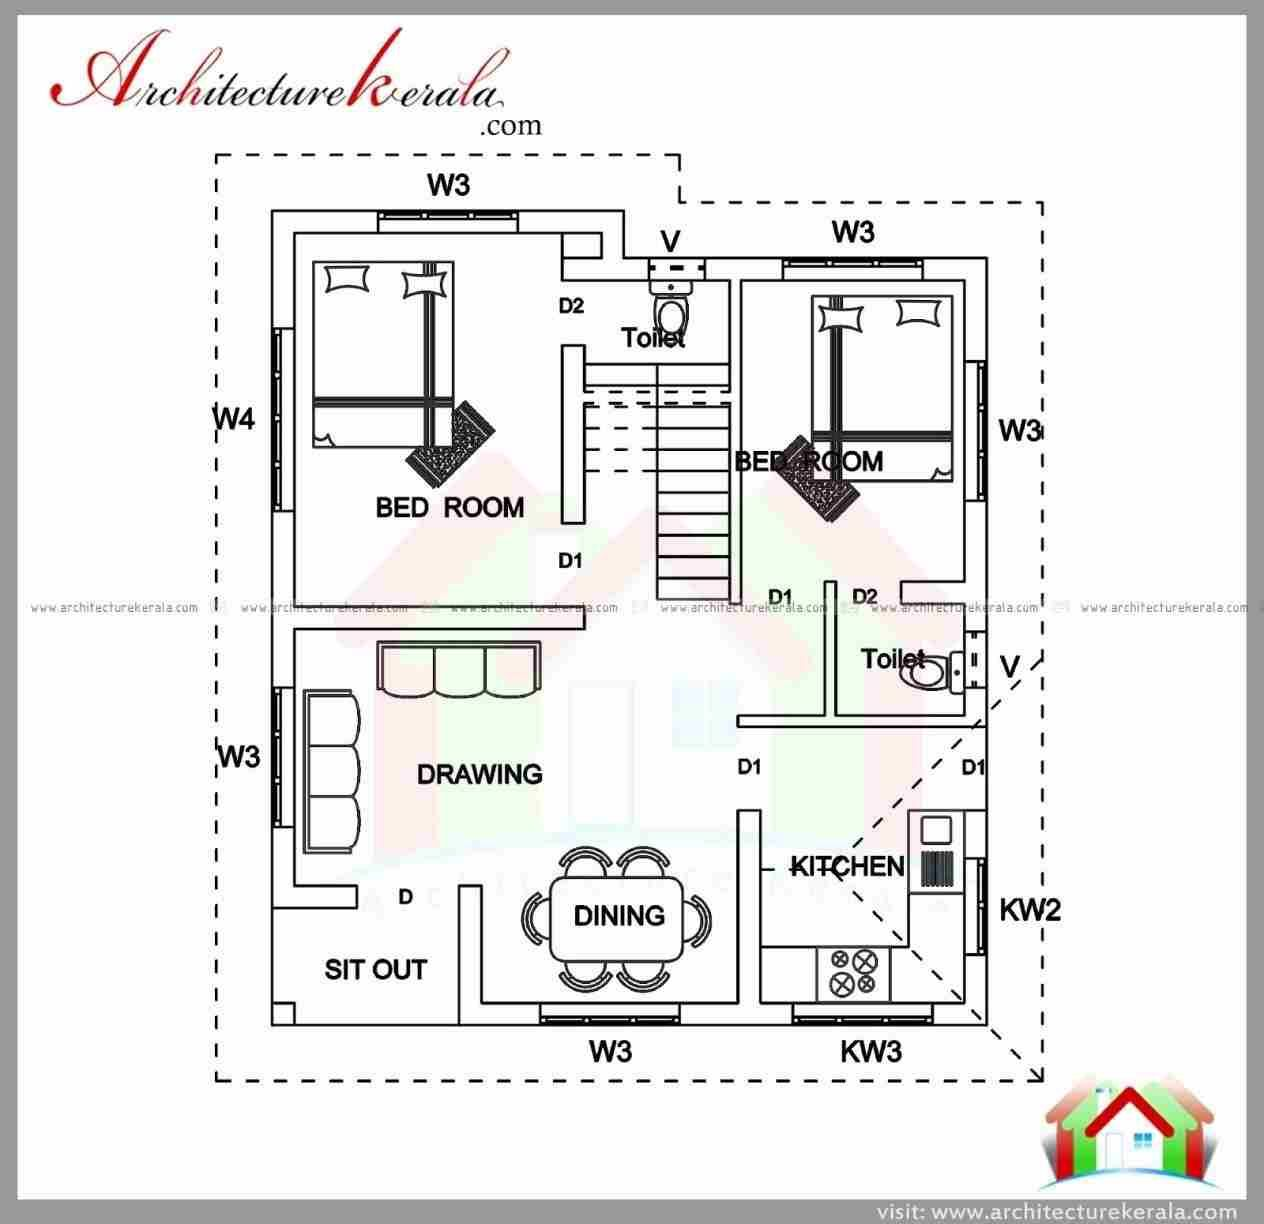 Sq Ft Semengnetrhsemengnet Lovely Awesome Rhciaonlinecom Lovely 2 Bedroom House Plans Indian Small Modern House Plans Bedroom House Plans 2 Bedroom House Plans